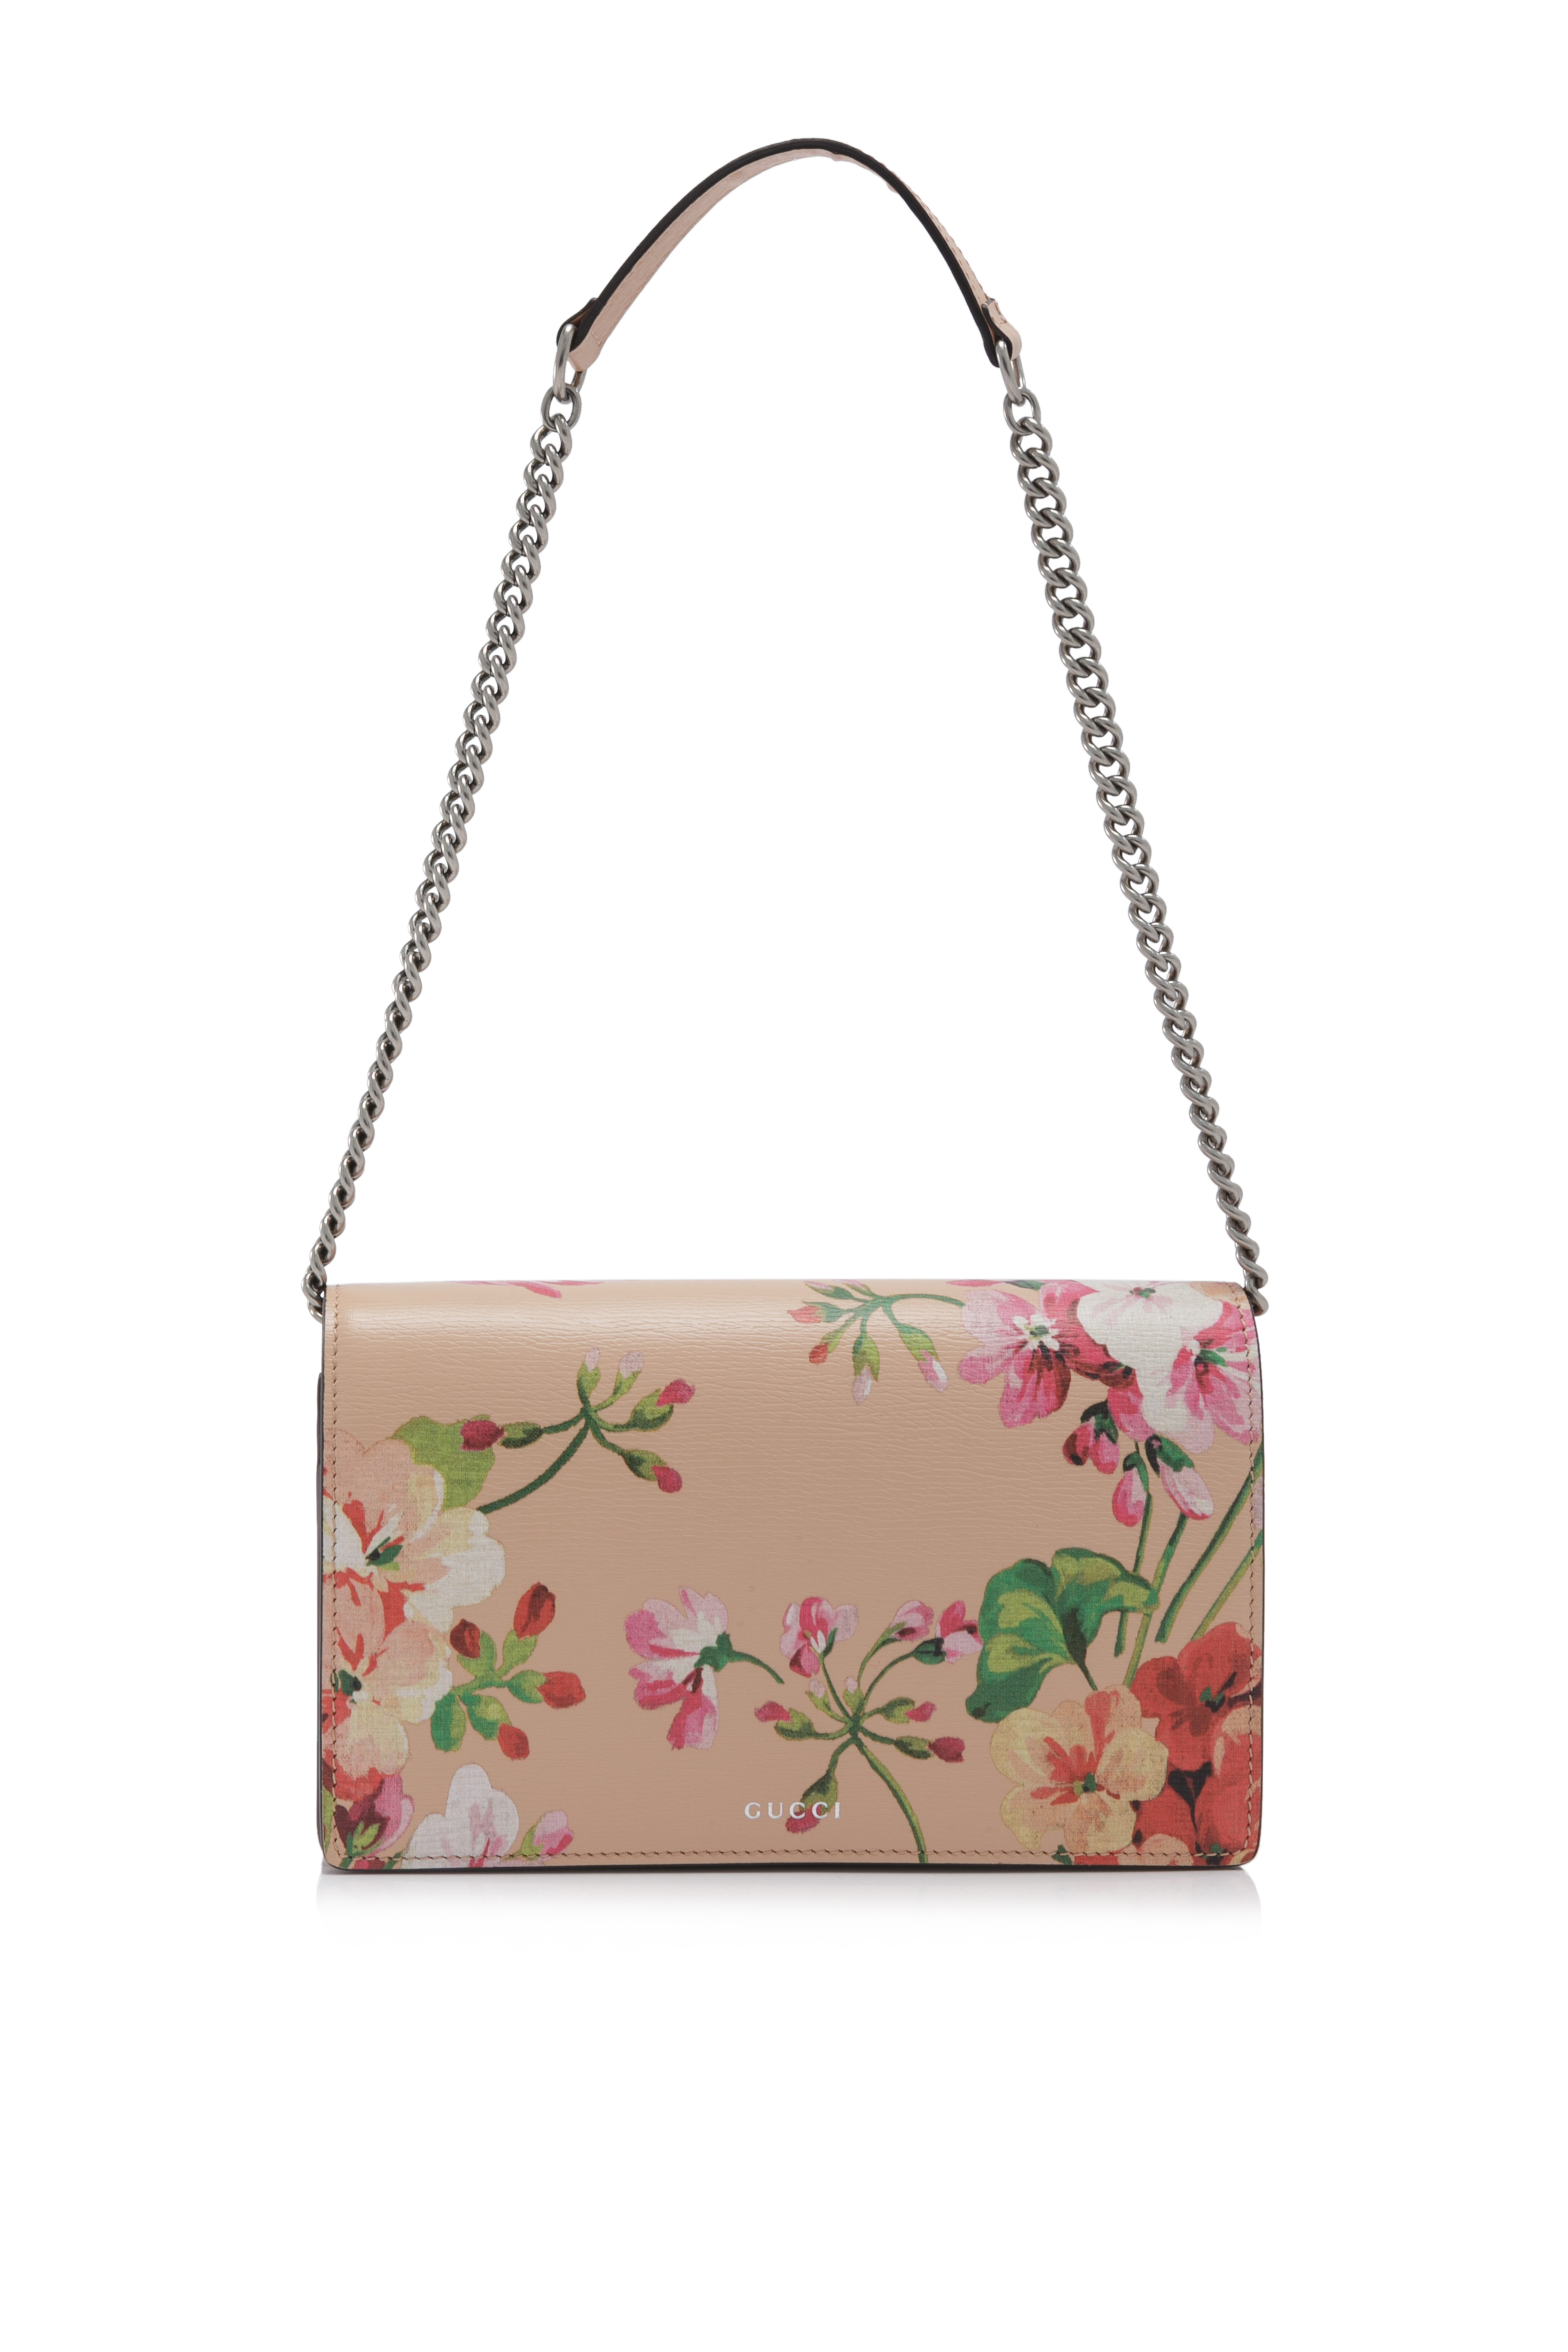 Gucci Blooms Leather Chain Wallet (01).jpg